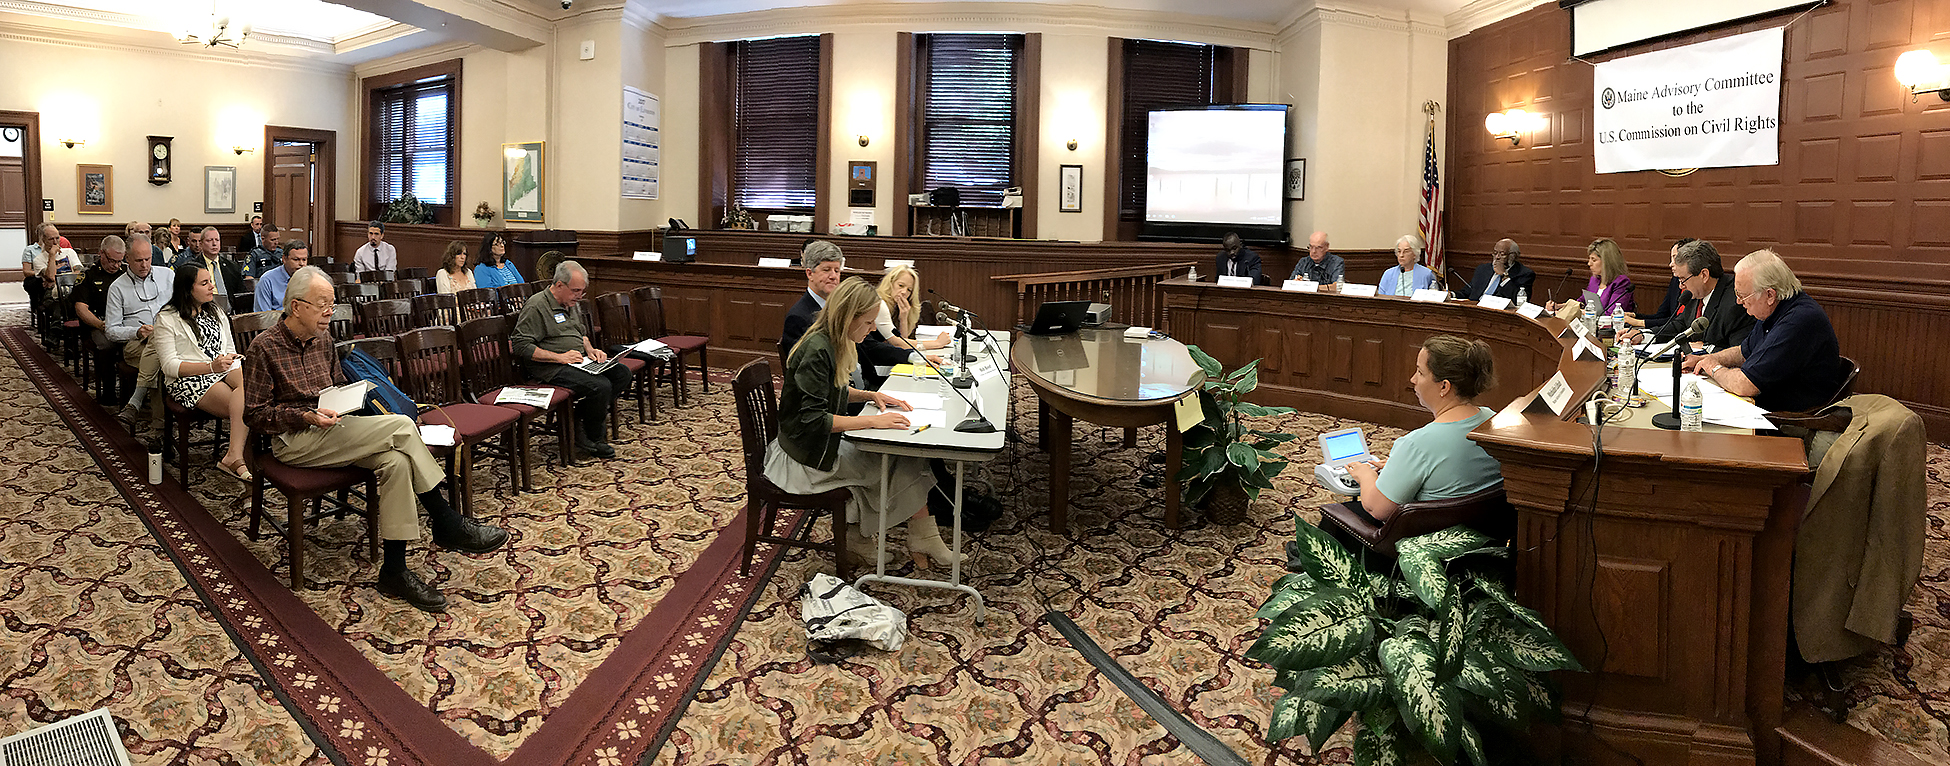 State committee gets earful about mental health deficiencies ...